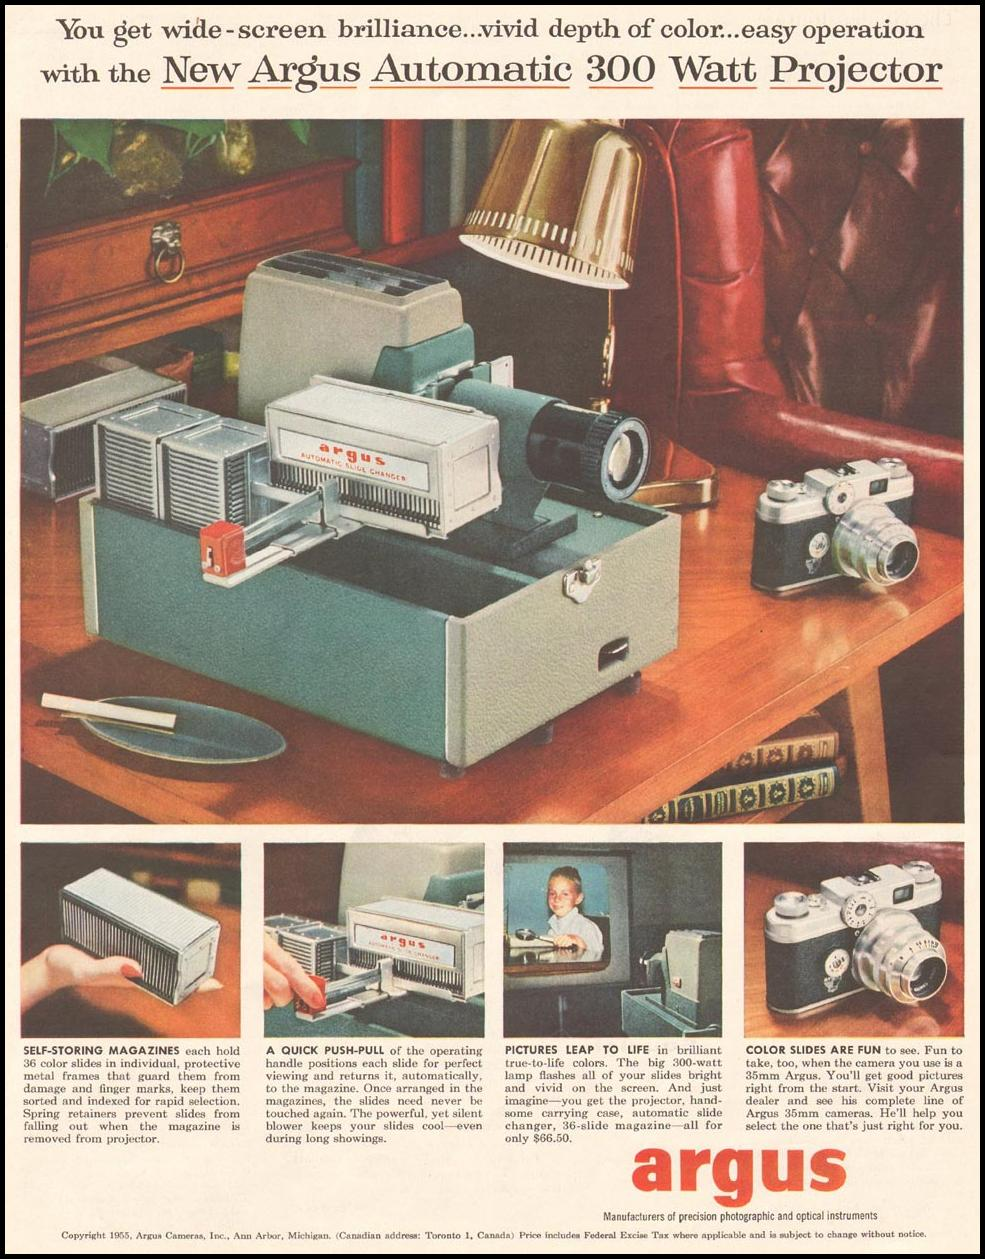 ARGUS SLIDE PROJECTORS SATURDAY EVENING POST 10/29/1955 p. 109